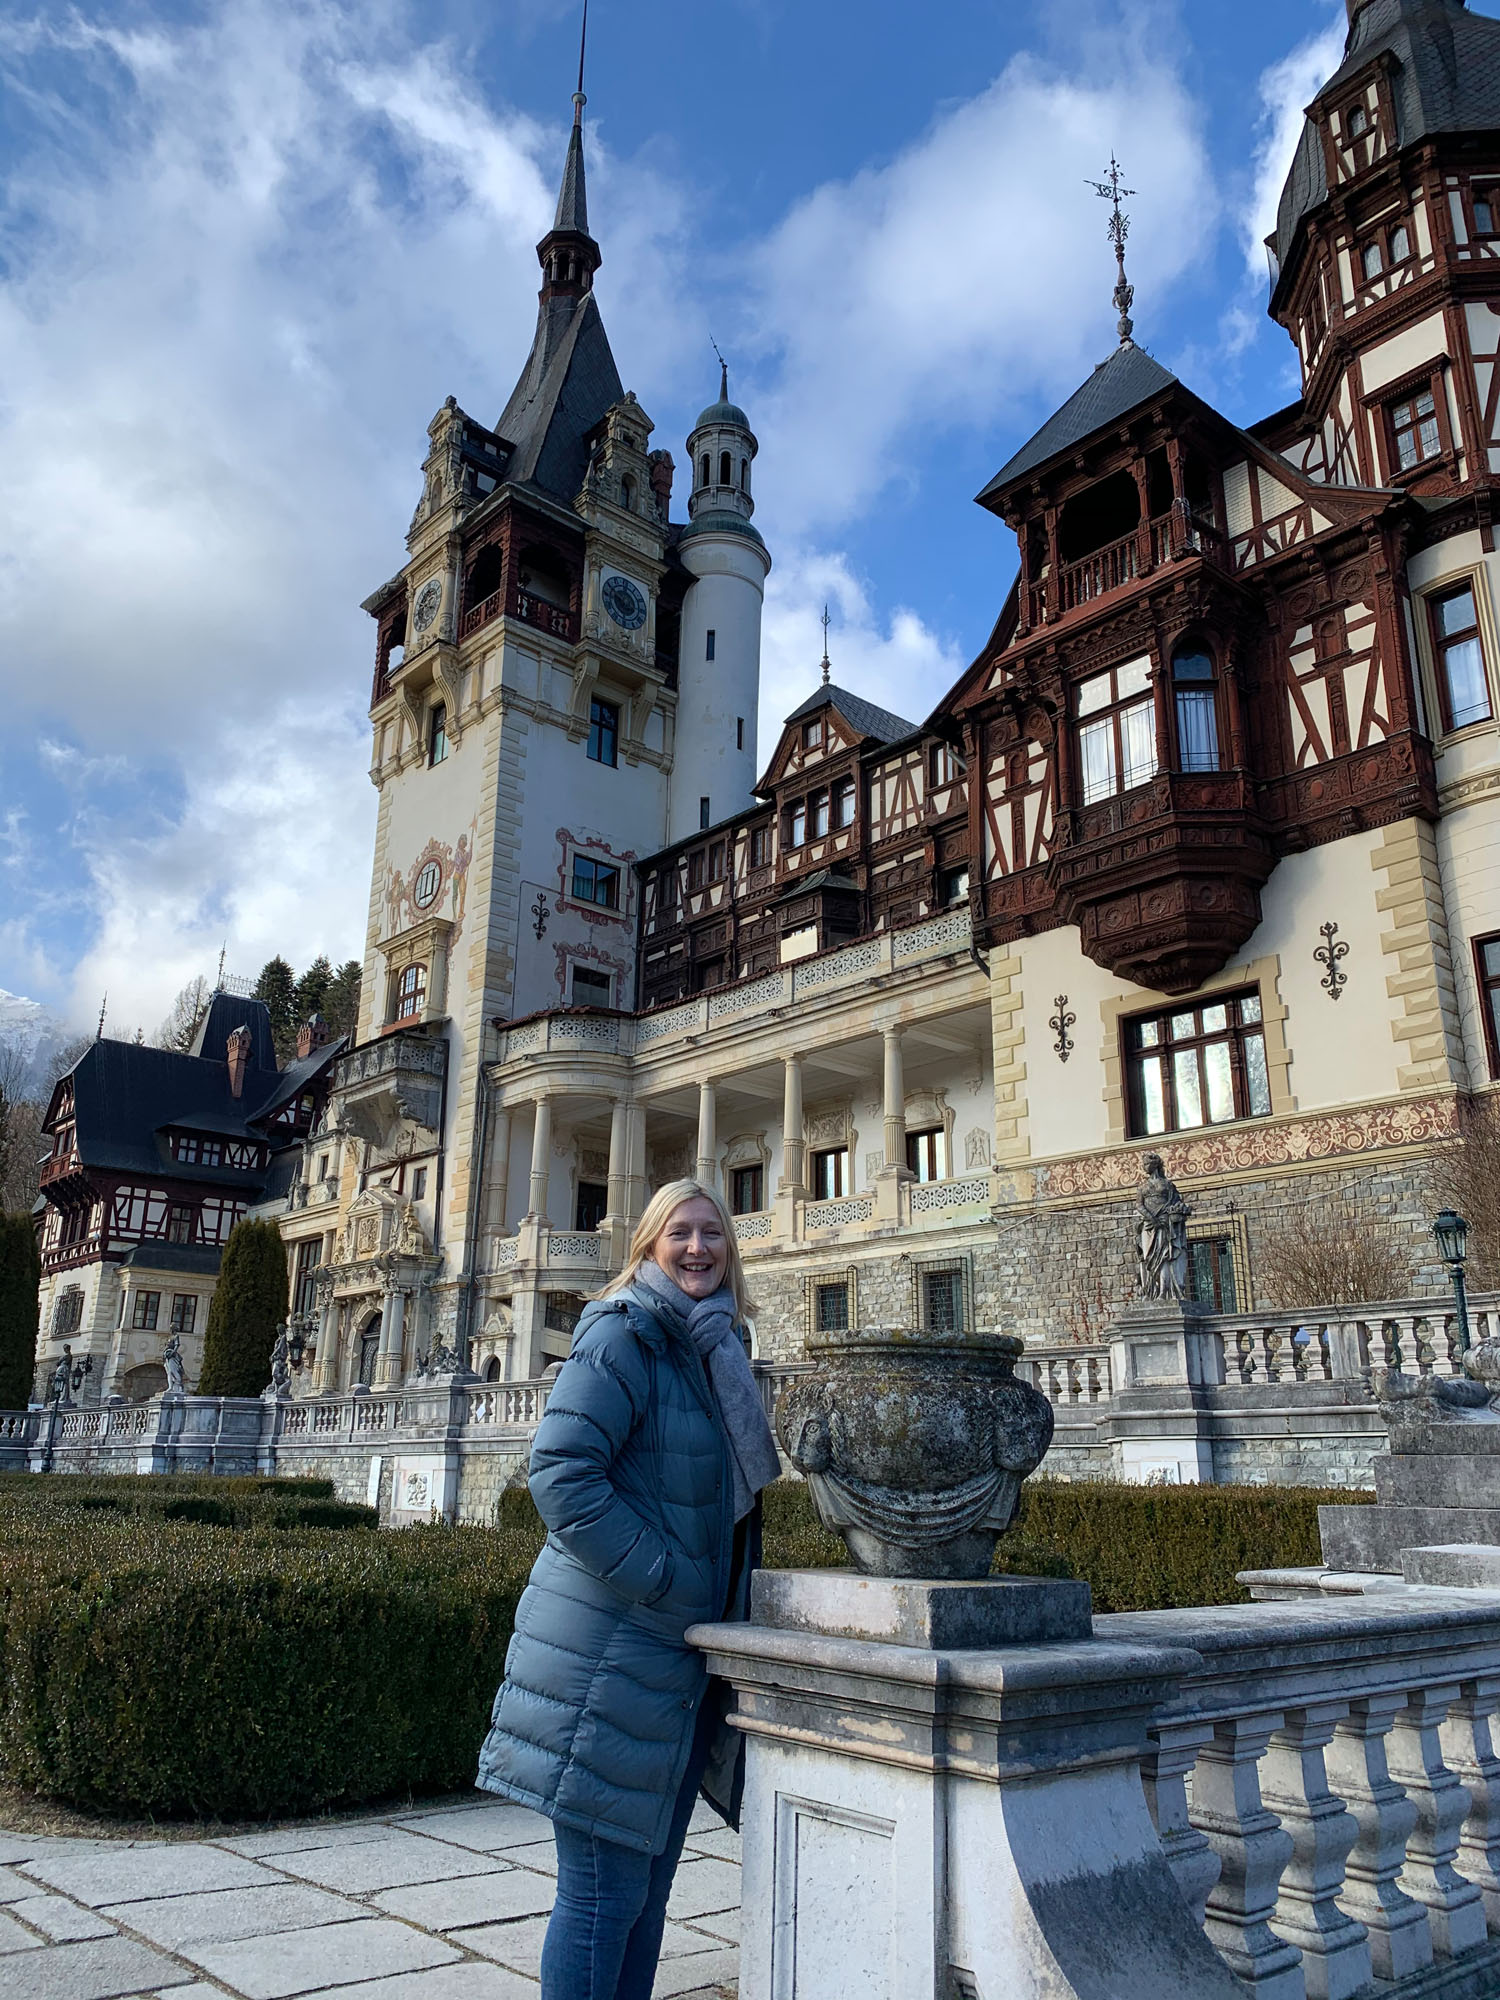 Philippa strikes a pose in front of Peleș Castle, Romania.